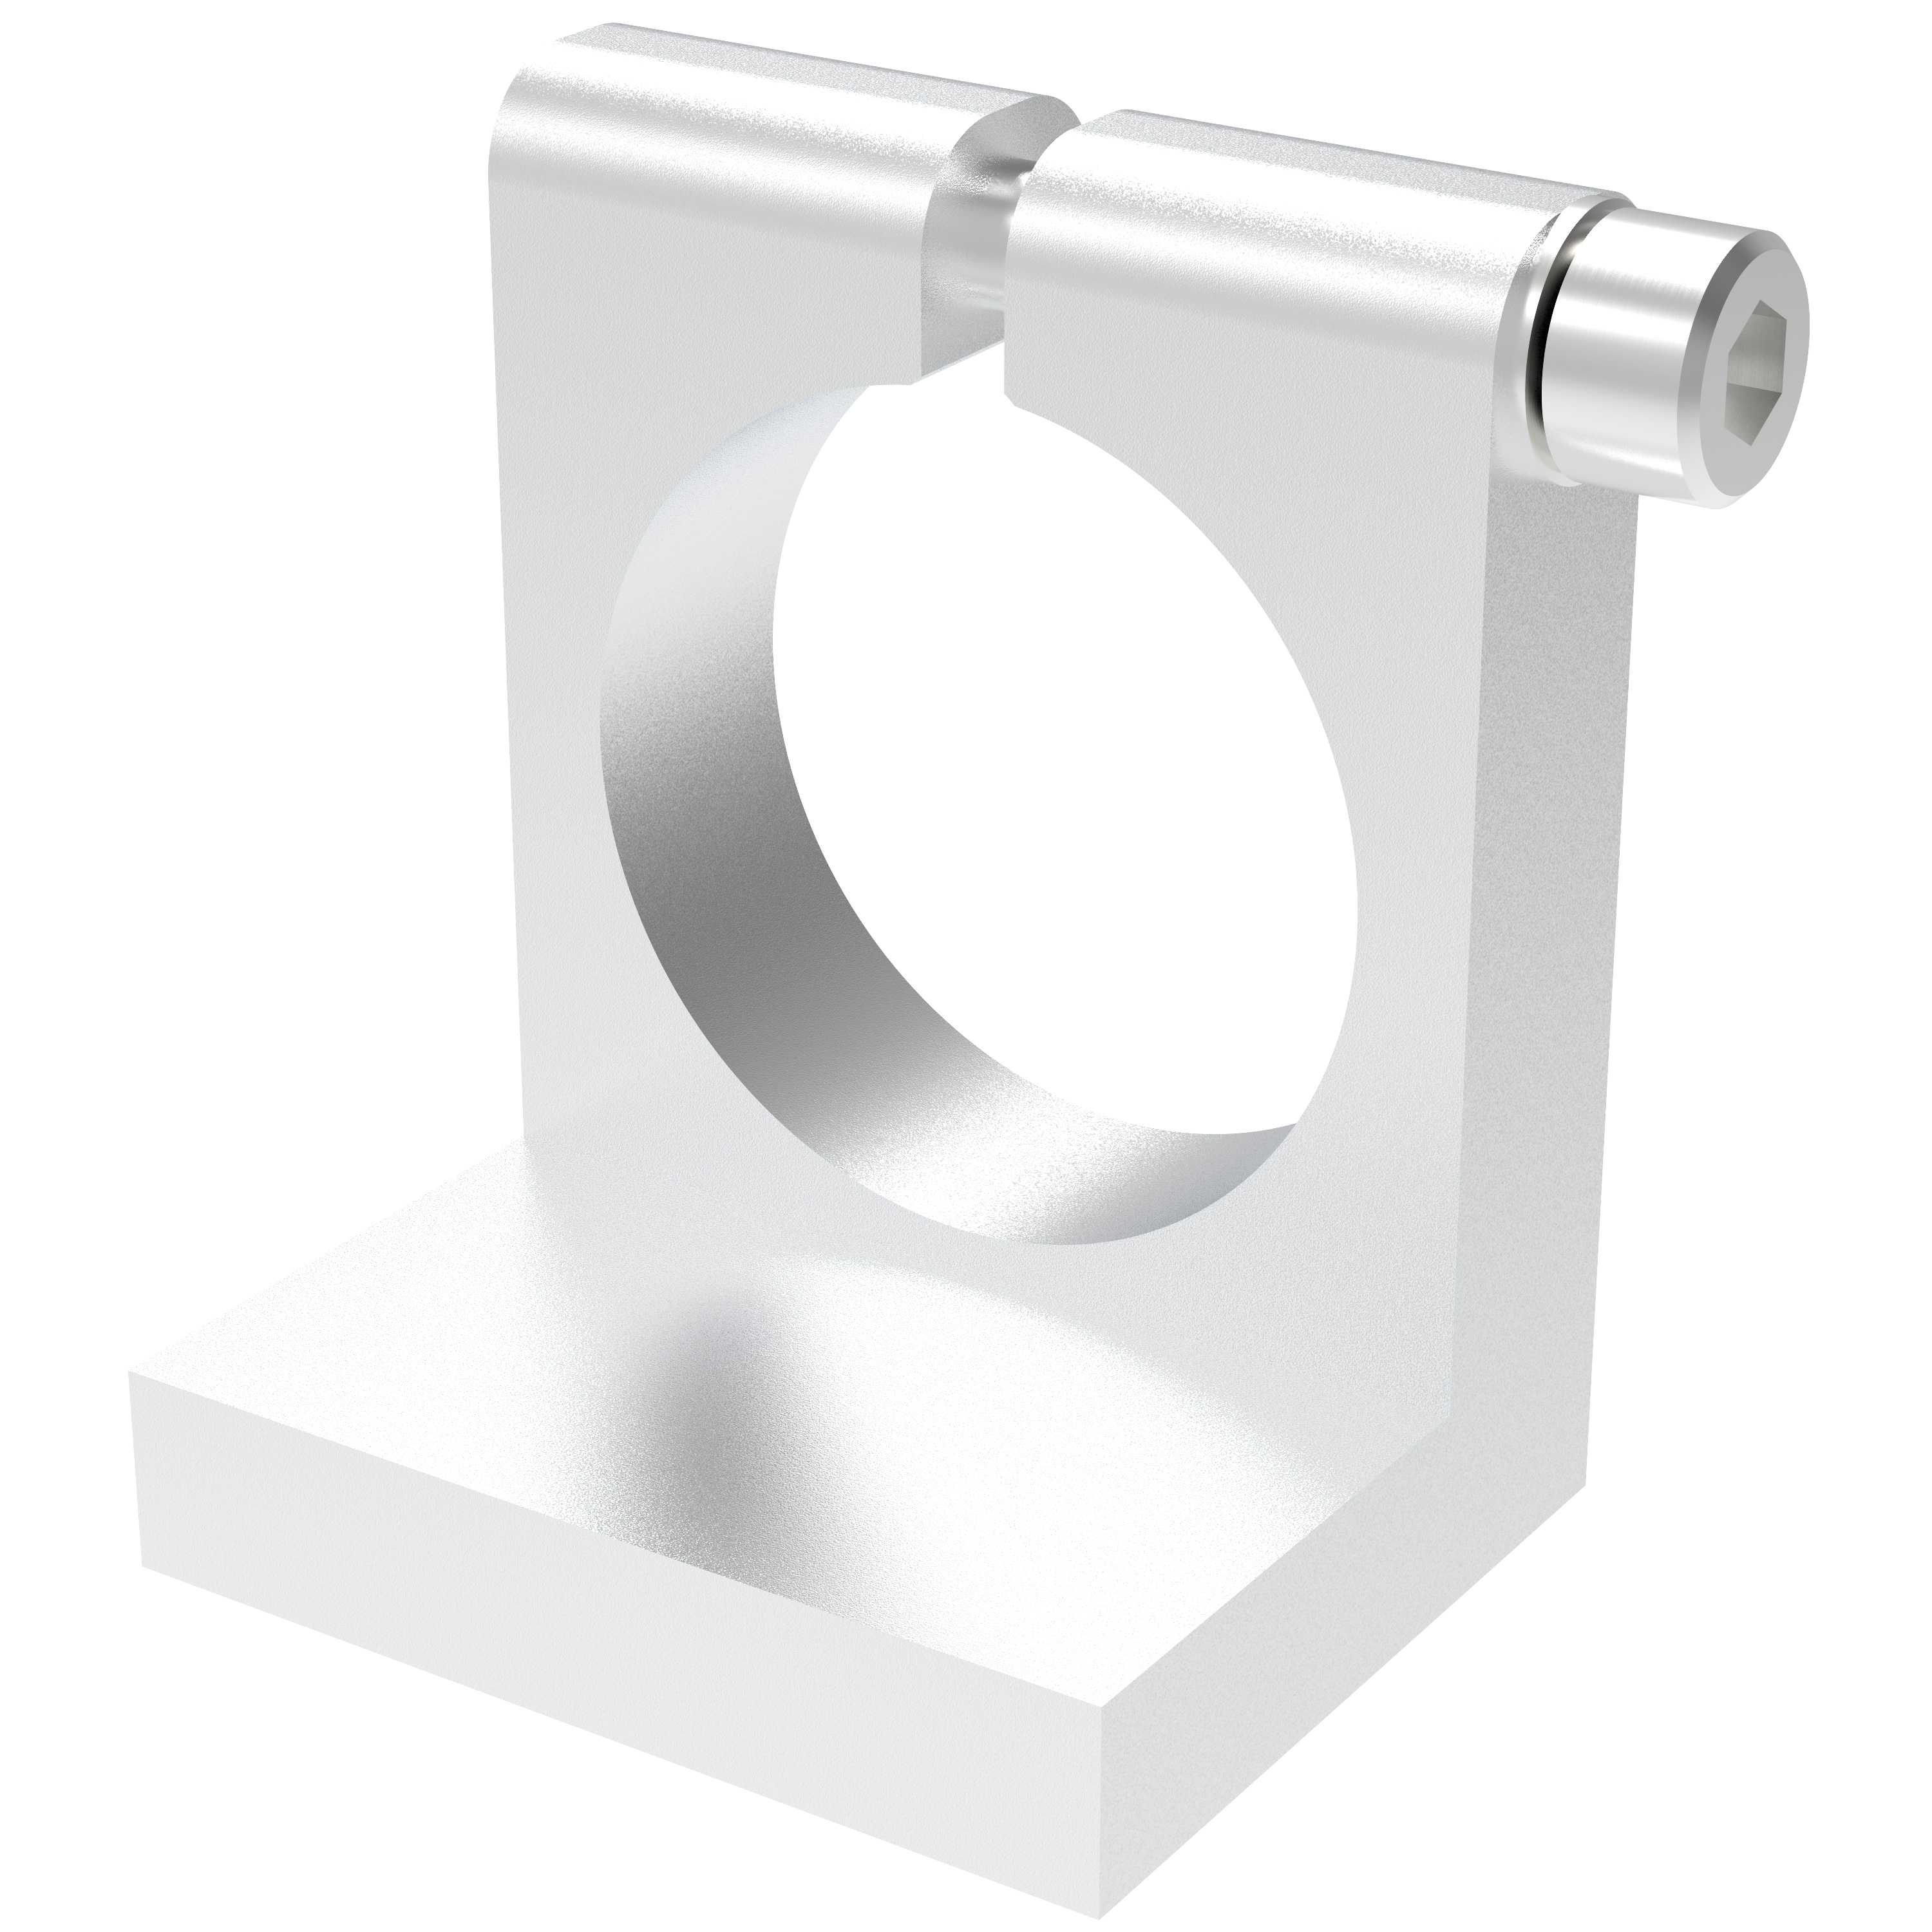 ANS Edge clamps for GRF